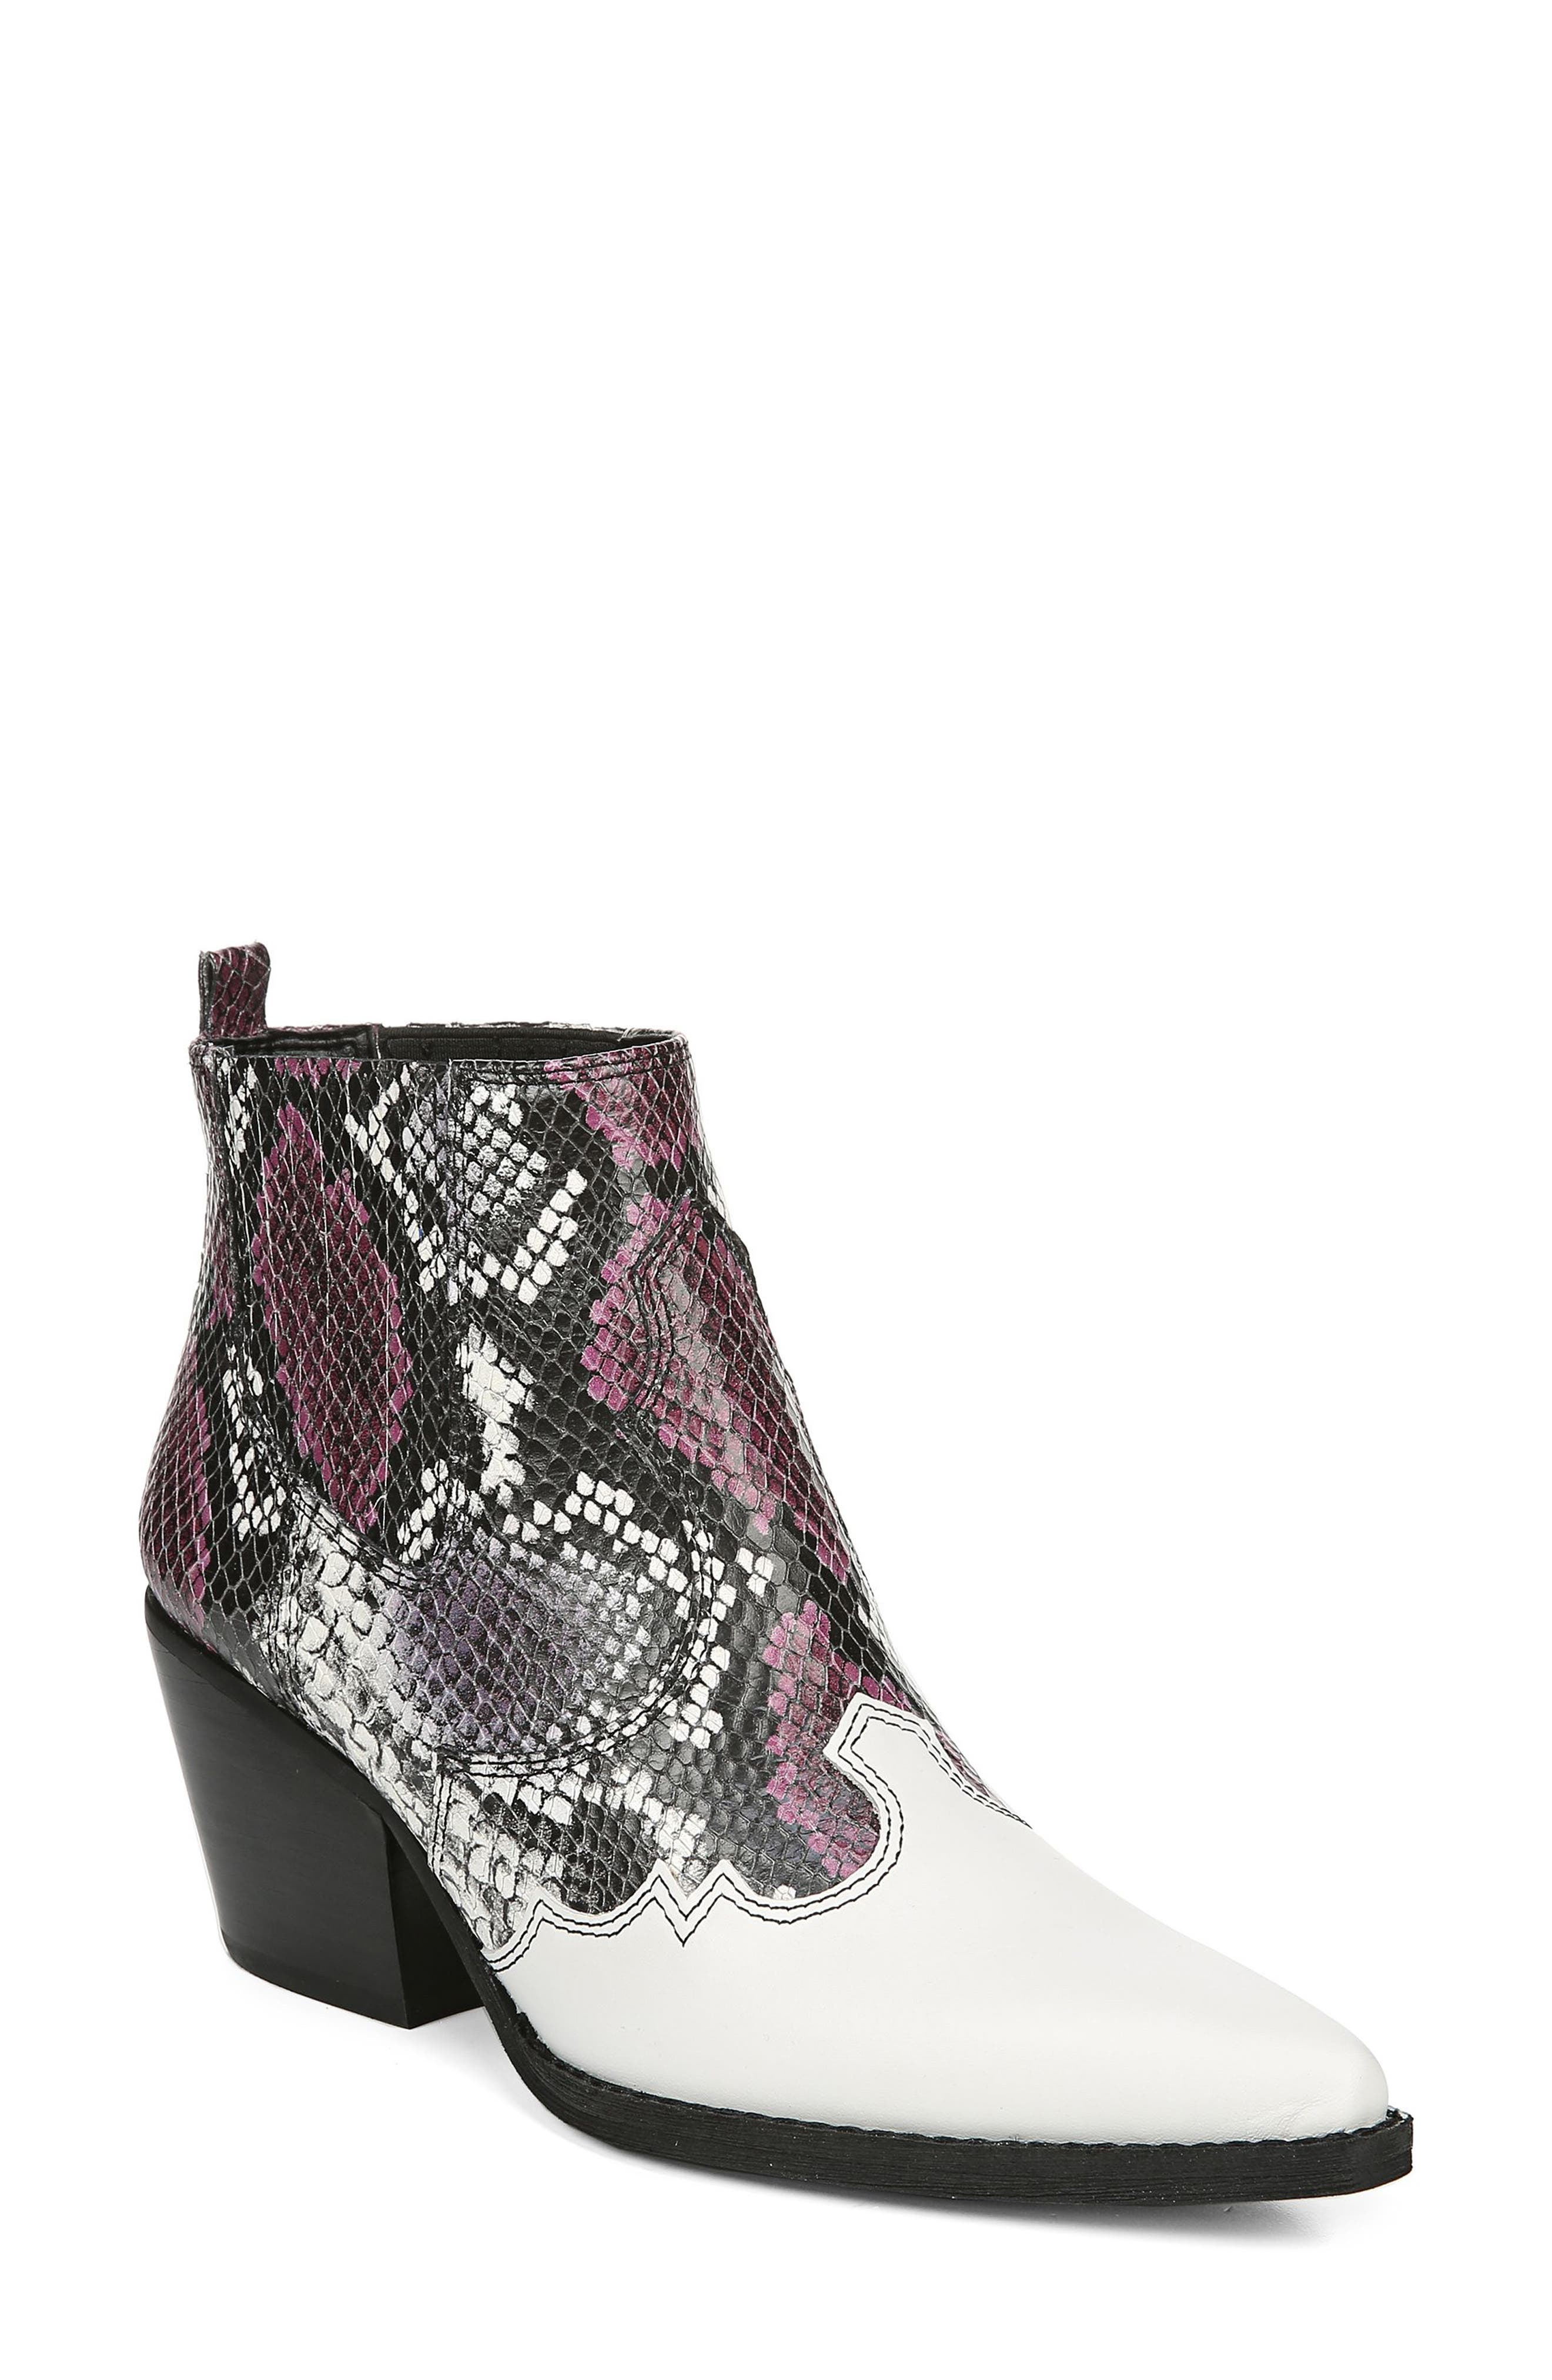 028f17f62c380 Women's Fashion Trends: Clothing, Shoes & Accessories | Nordstrom